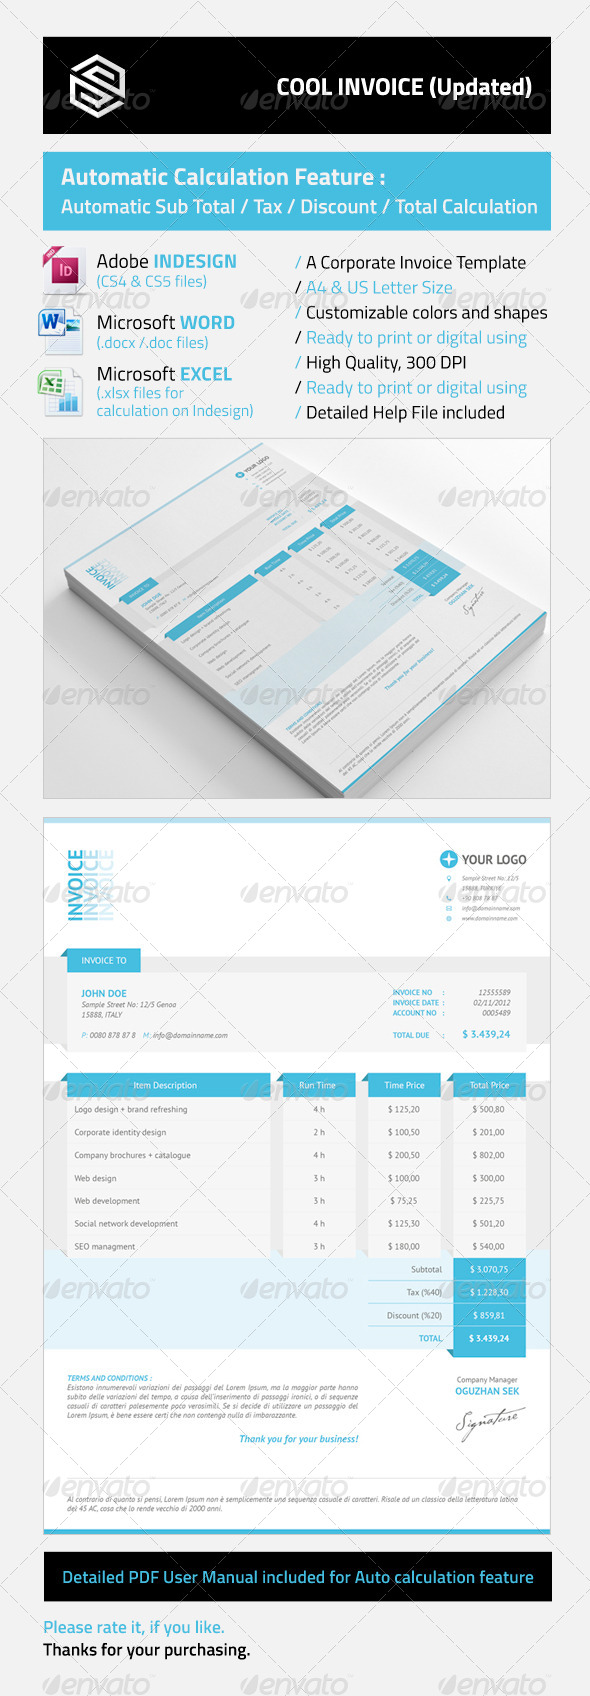 State Gross Receipts Tax Excel Cool Invoices By Oguzhansek  Graphicriver Computer Repair Invoice with Receipt Of This Email Word Cool Invoices  Proposals  Invoices Stationery Chick Fil A Receipt Pdf